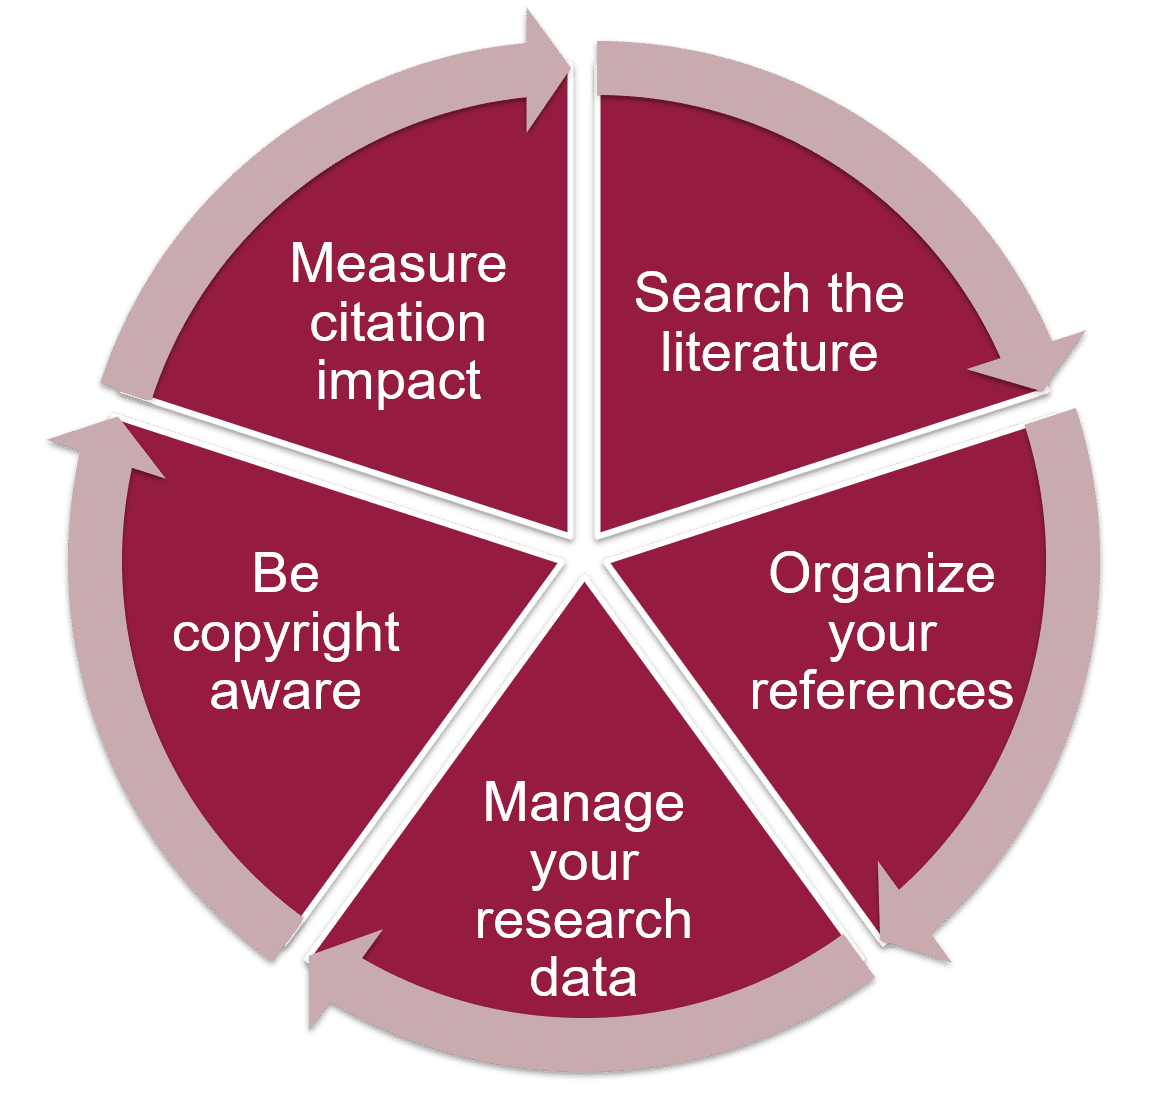 Diagram of the circular and iterative research life cycle. Open the hotspots to learn more about each step.